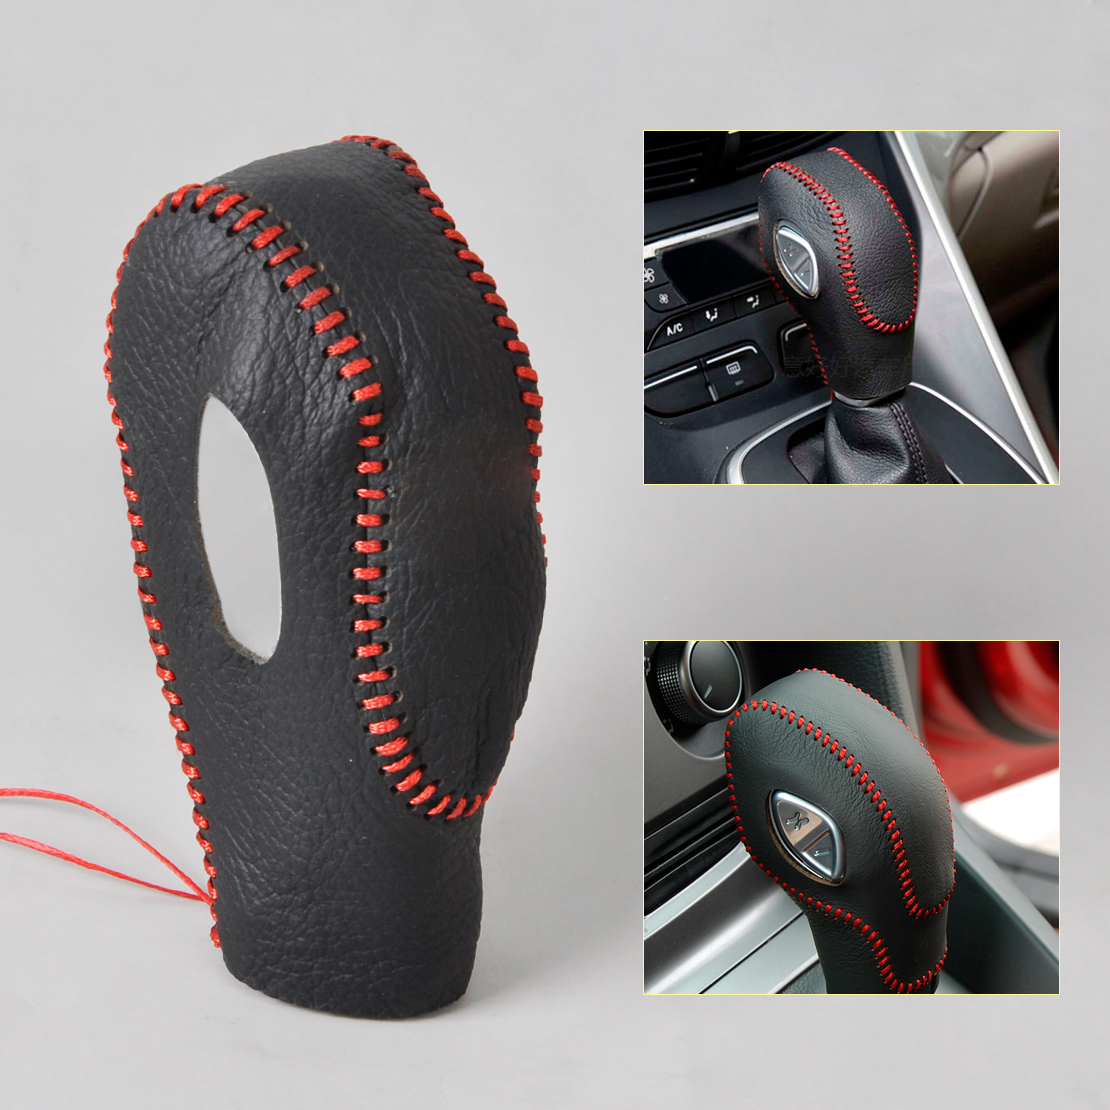 CITALL Genuine Black Leather Red Thread Gear Shift Knob Cover for Ford Focus 3 2012 2013 ...